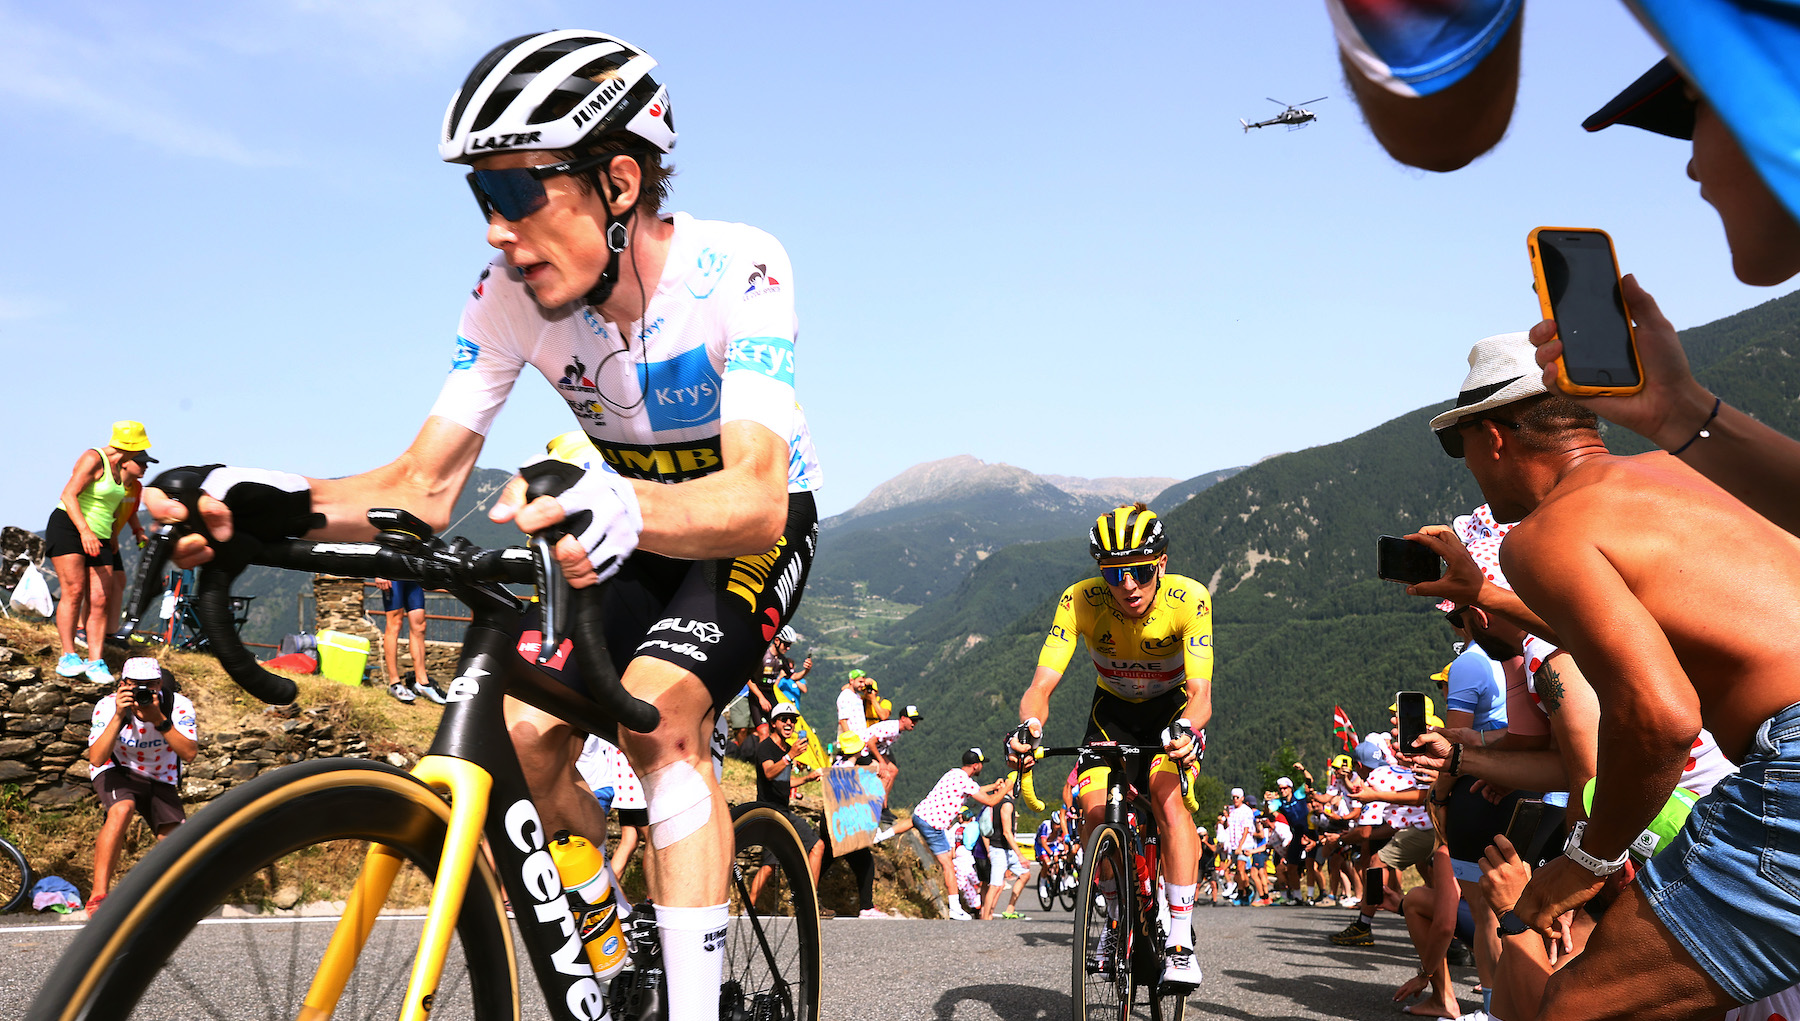 Jonas Vingegaard on the attack in the 2021 Tour de France